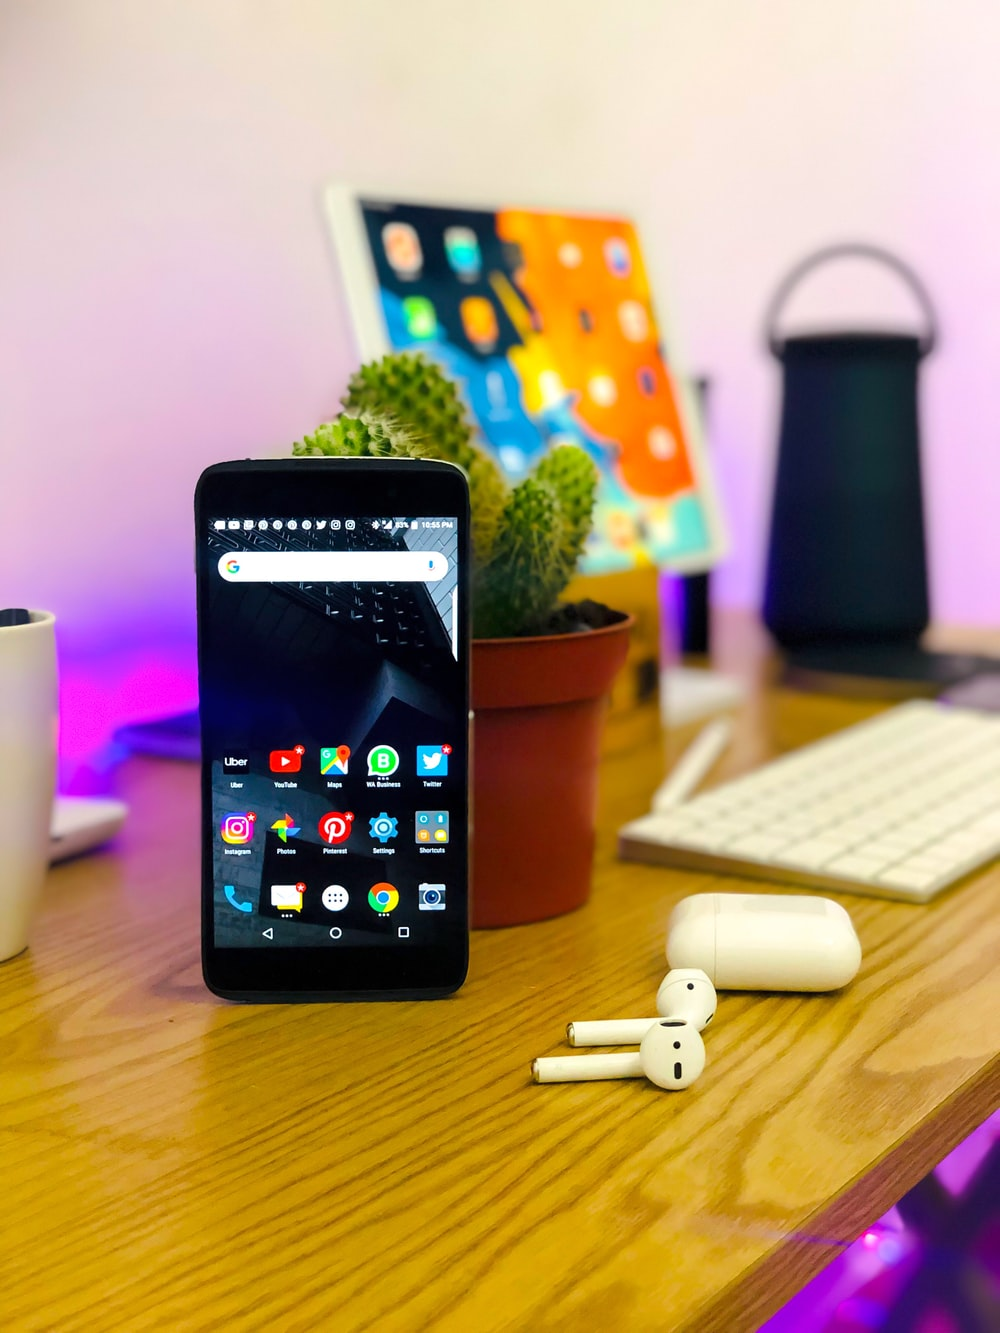 black Android smartphone on table